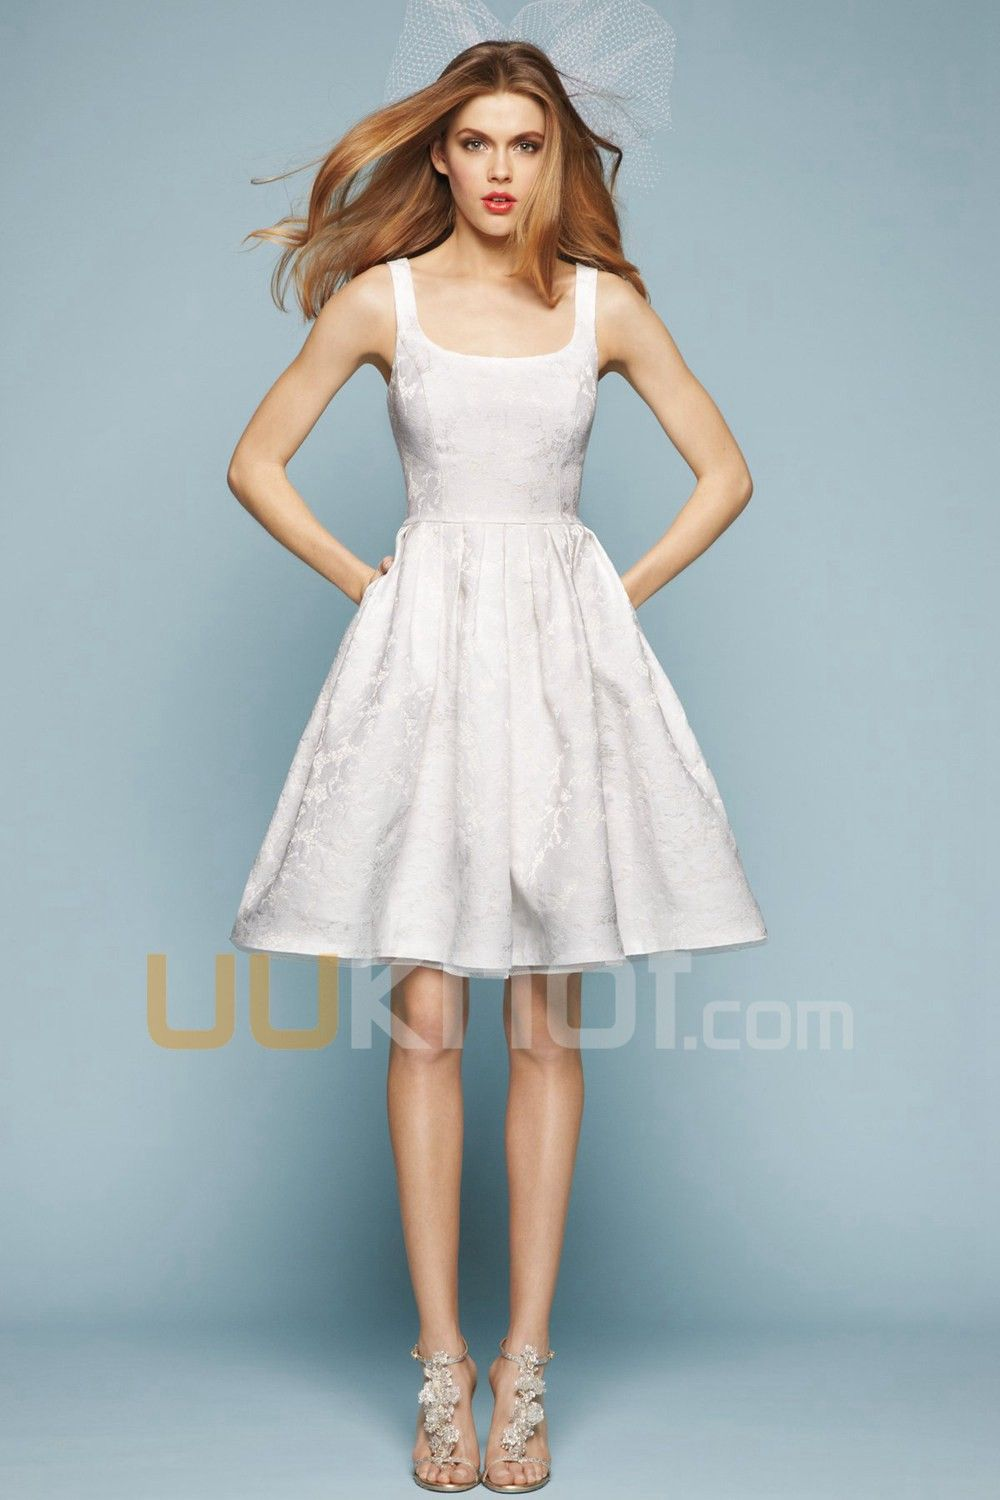 A-line Scoop Knee-Length Lace Wedding Dress For Bride - UUknot.com ...